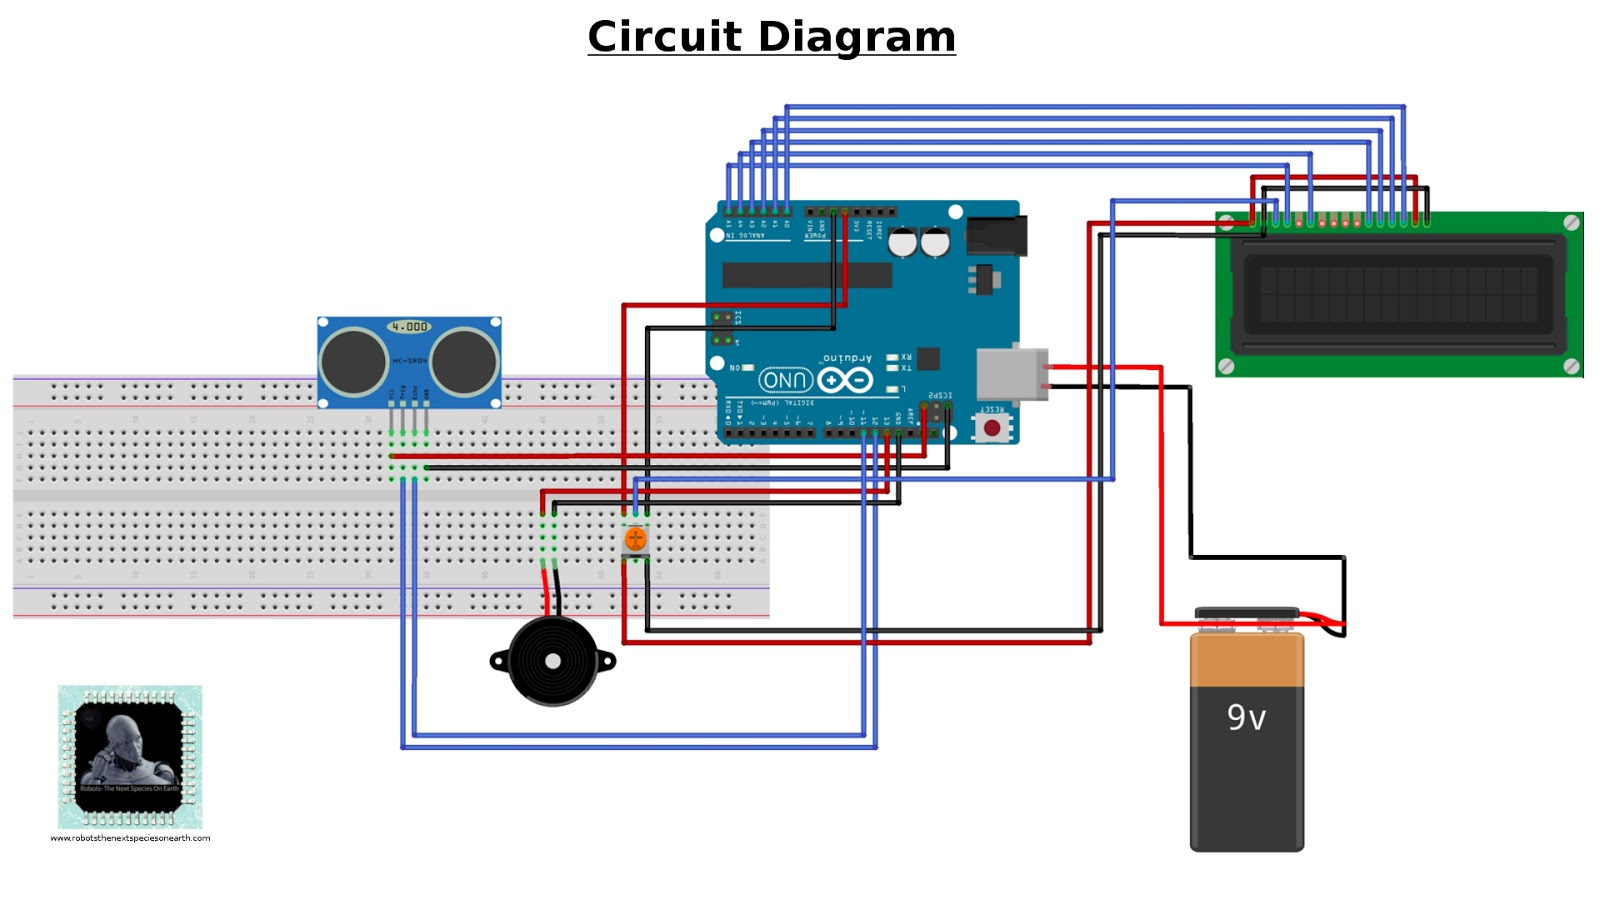 Com Products Circuitdiagramreverseparkingsystemwithsensorshtml Circuit Checker Add330 Auto Circuits Tracer Detector Car Short Reverse Parking Sensor System Using Arduino Robots The Next Rh Robotsthenextspeciesonearth